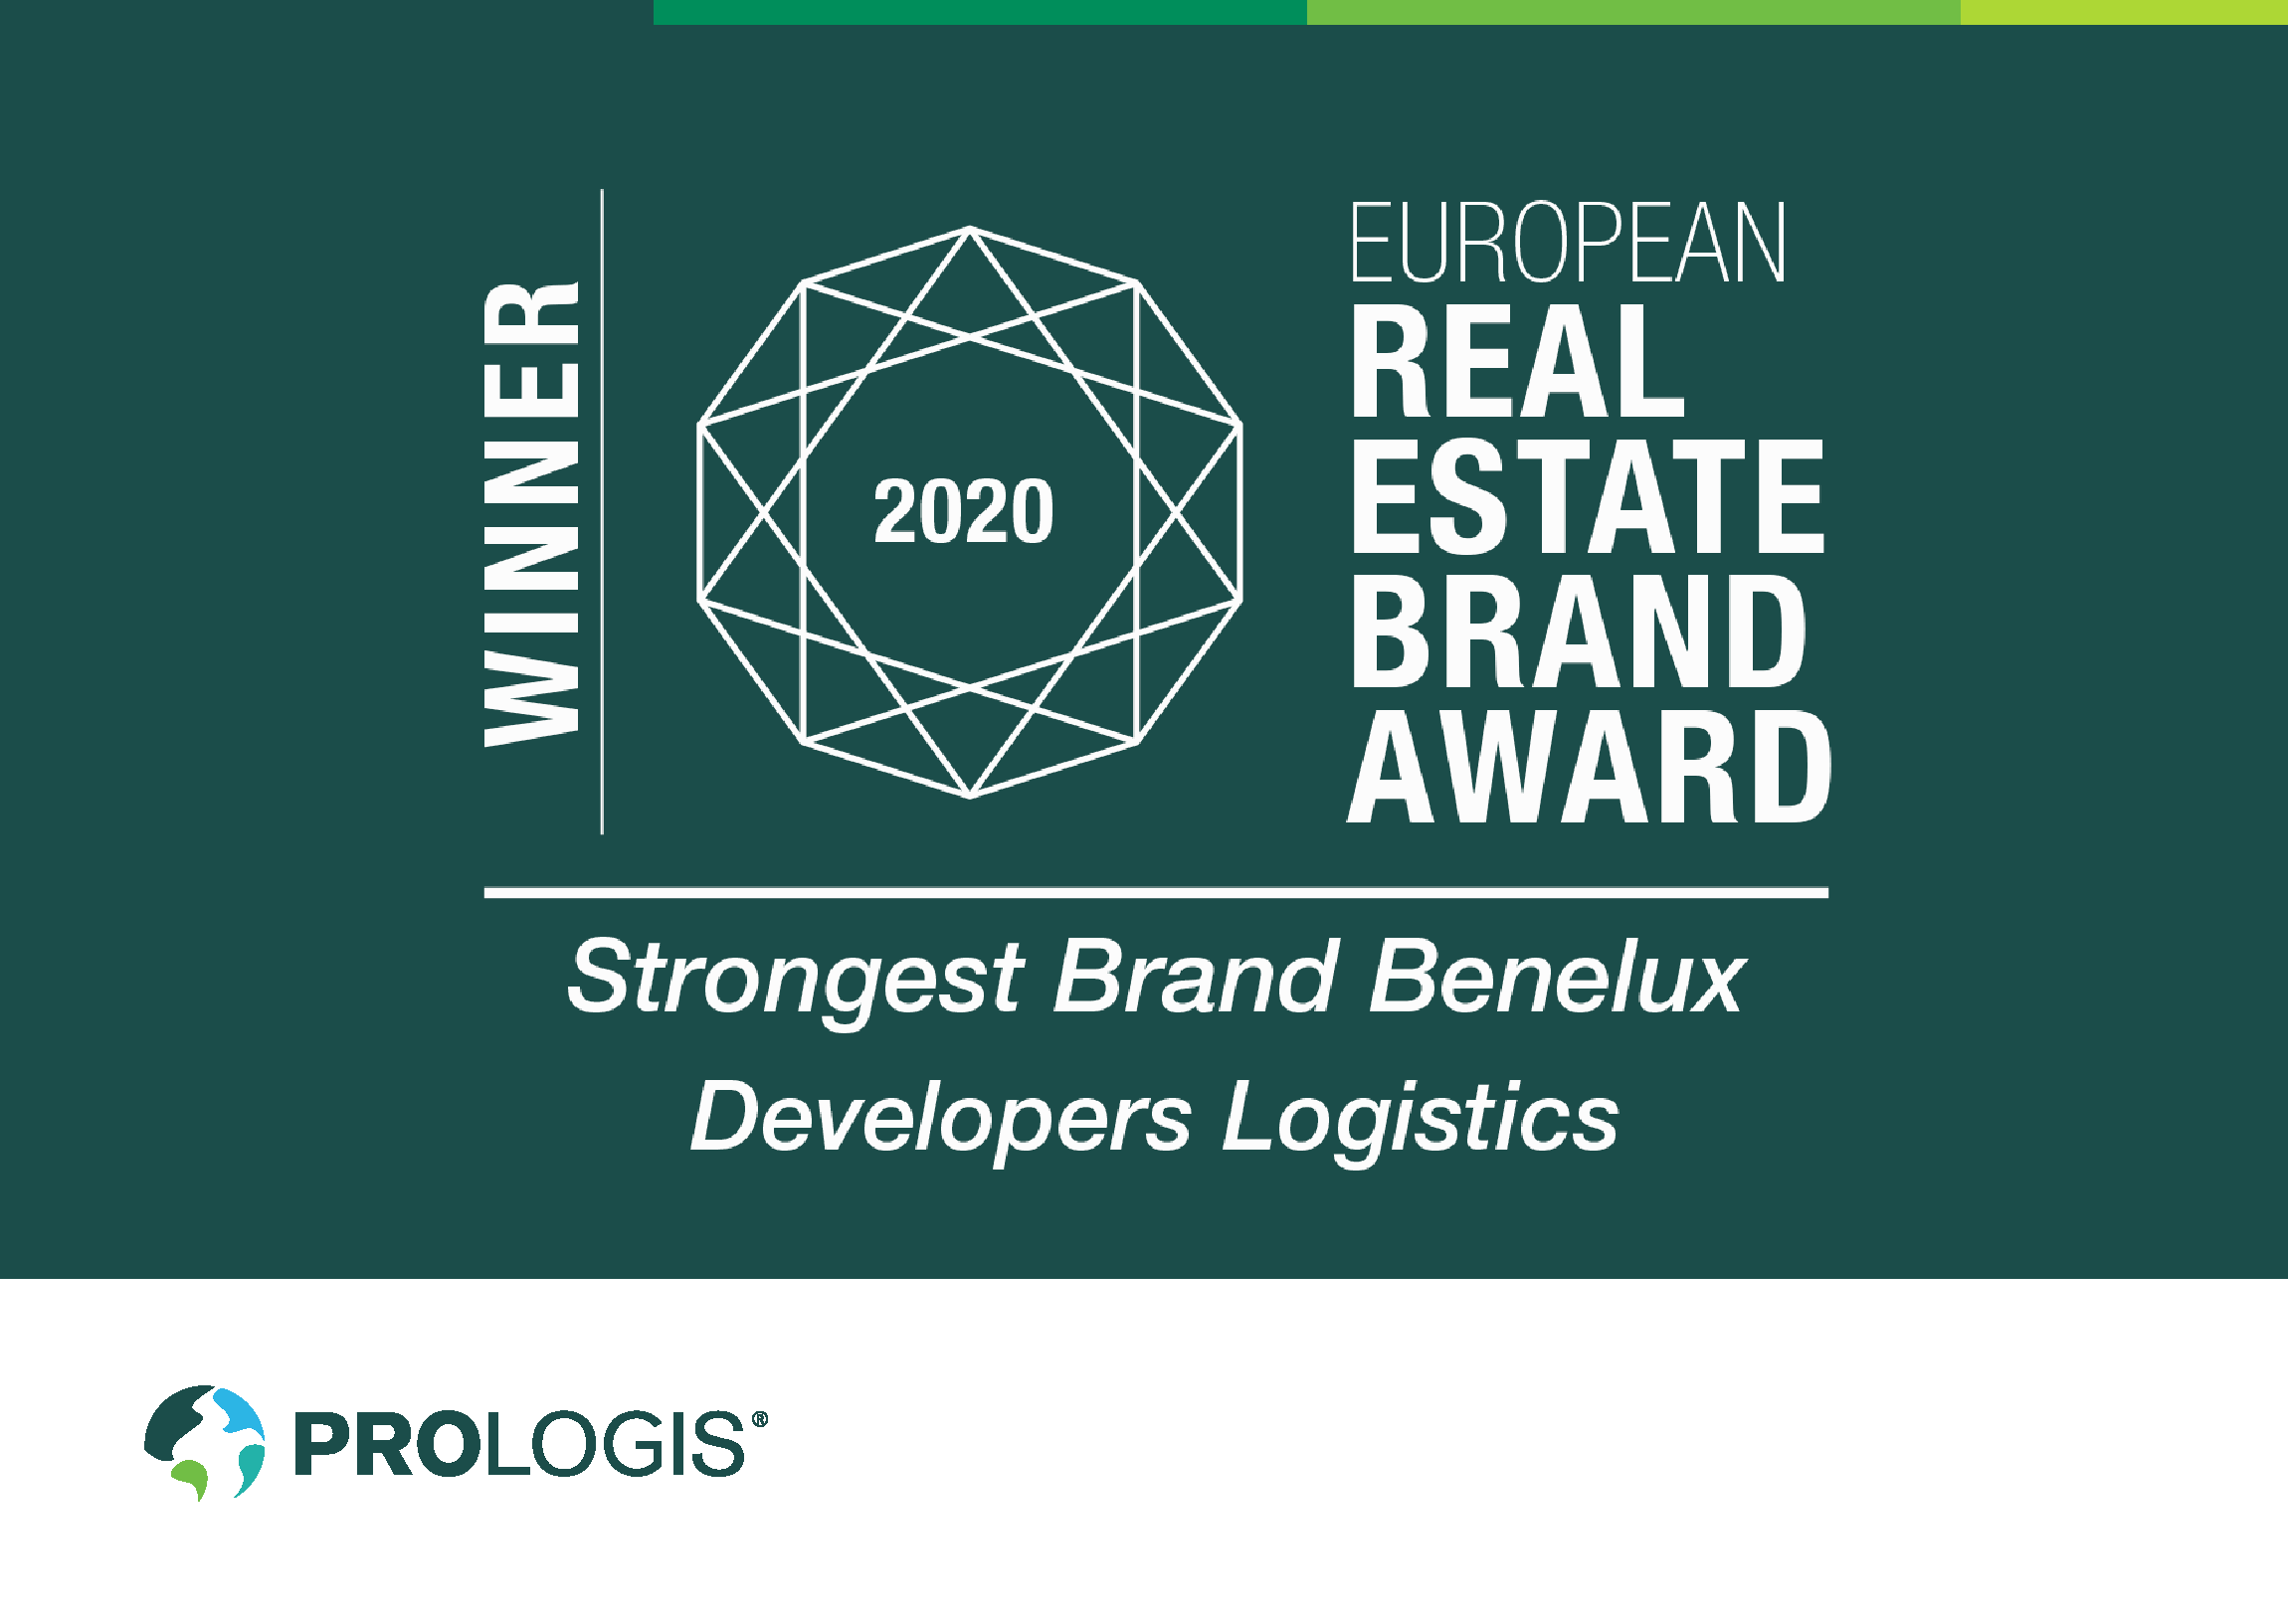 Benelux real estate brand award